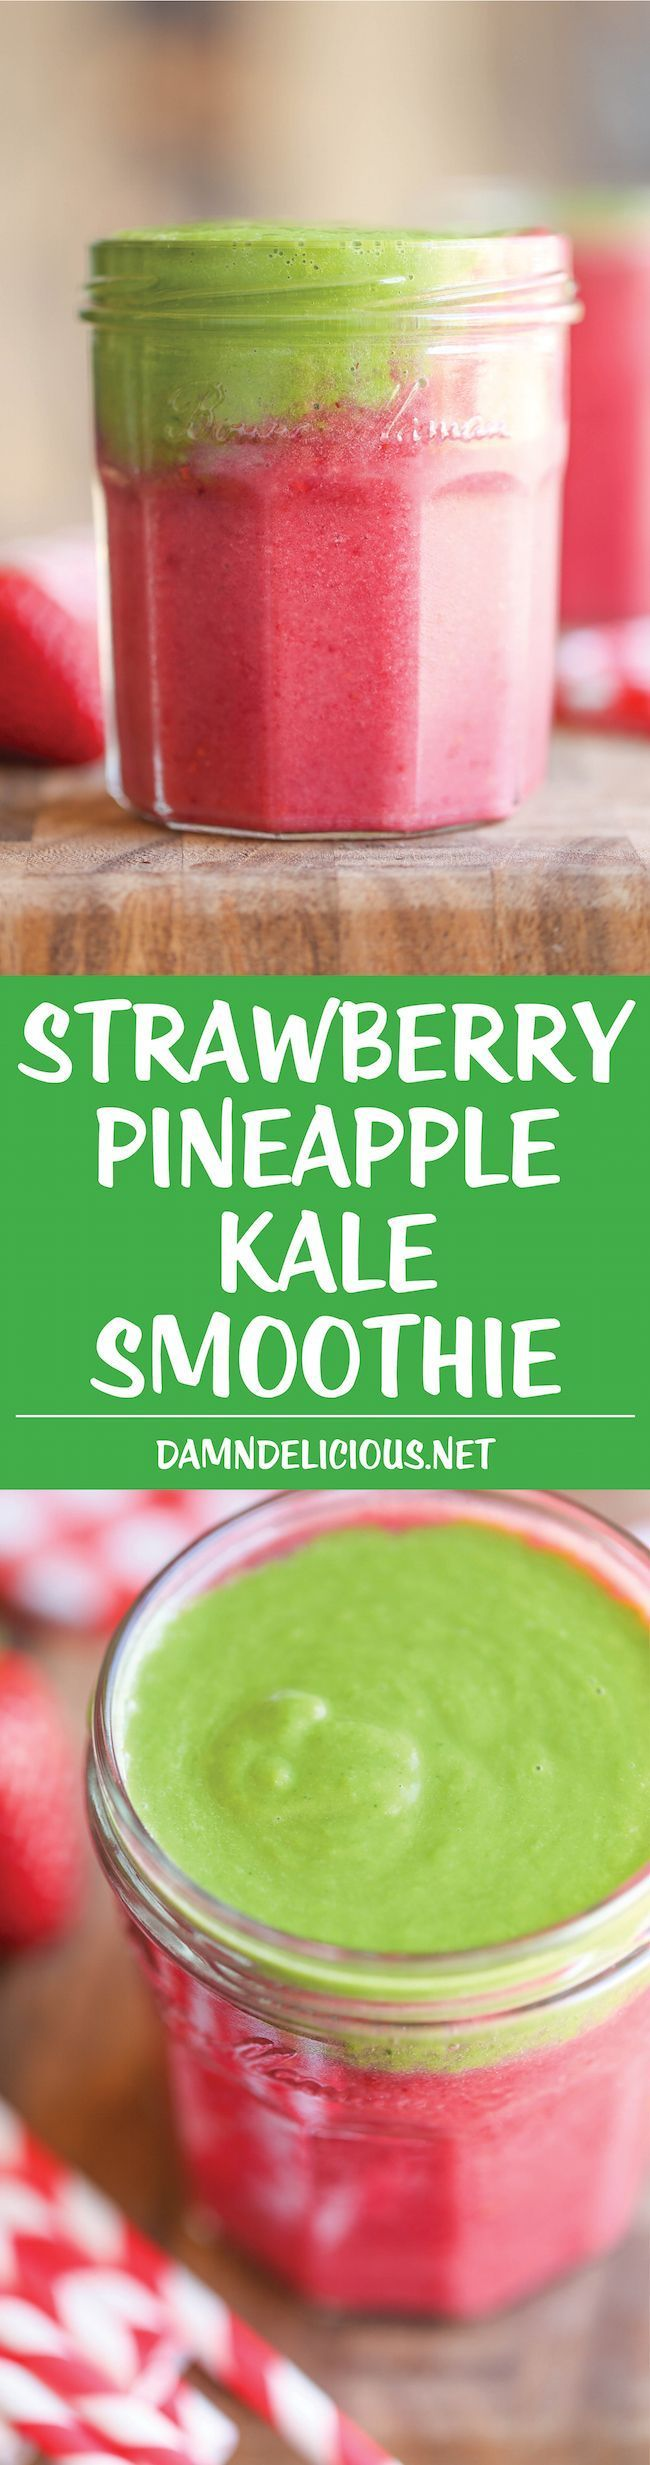 Strawberry, pineapple and kale smoothie